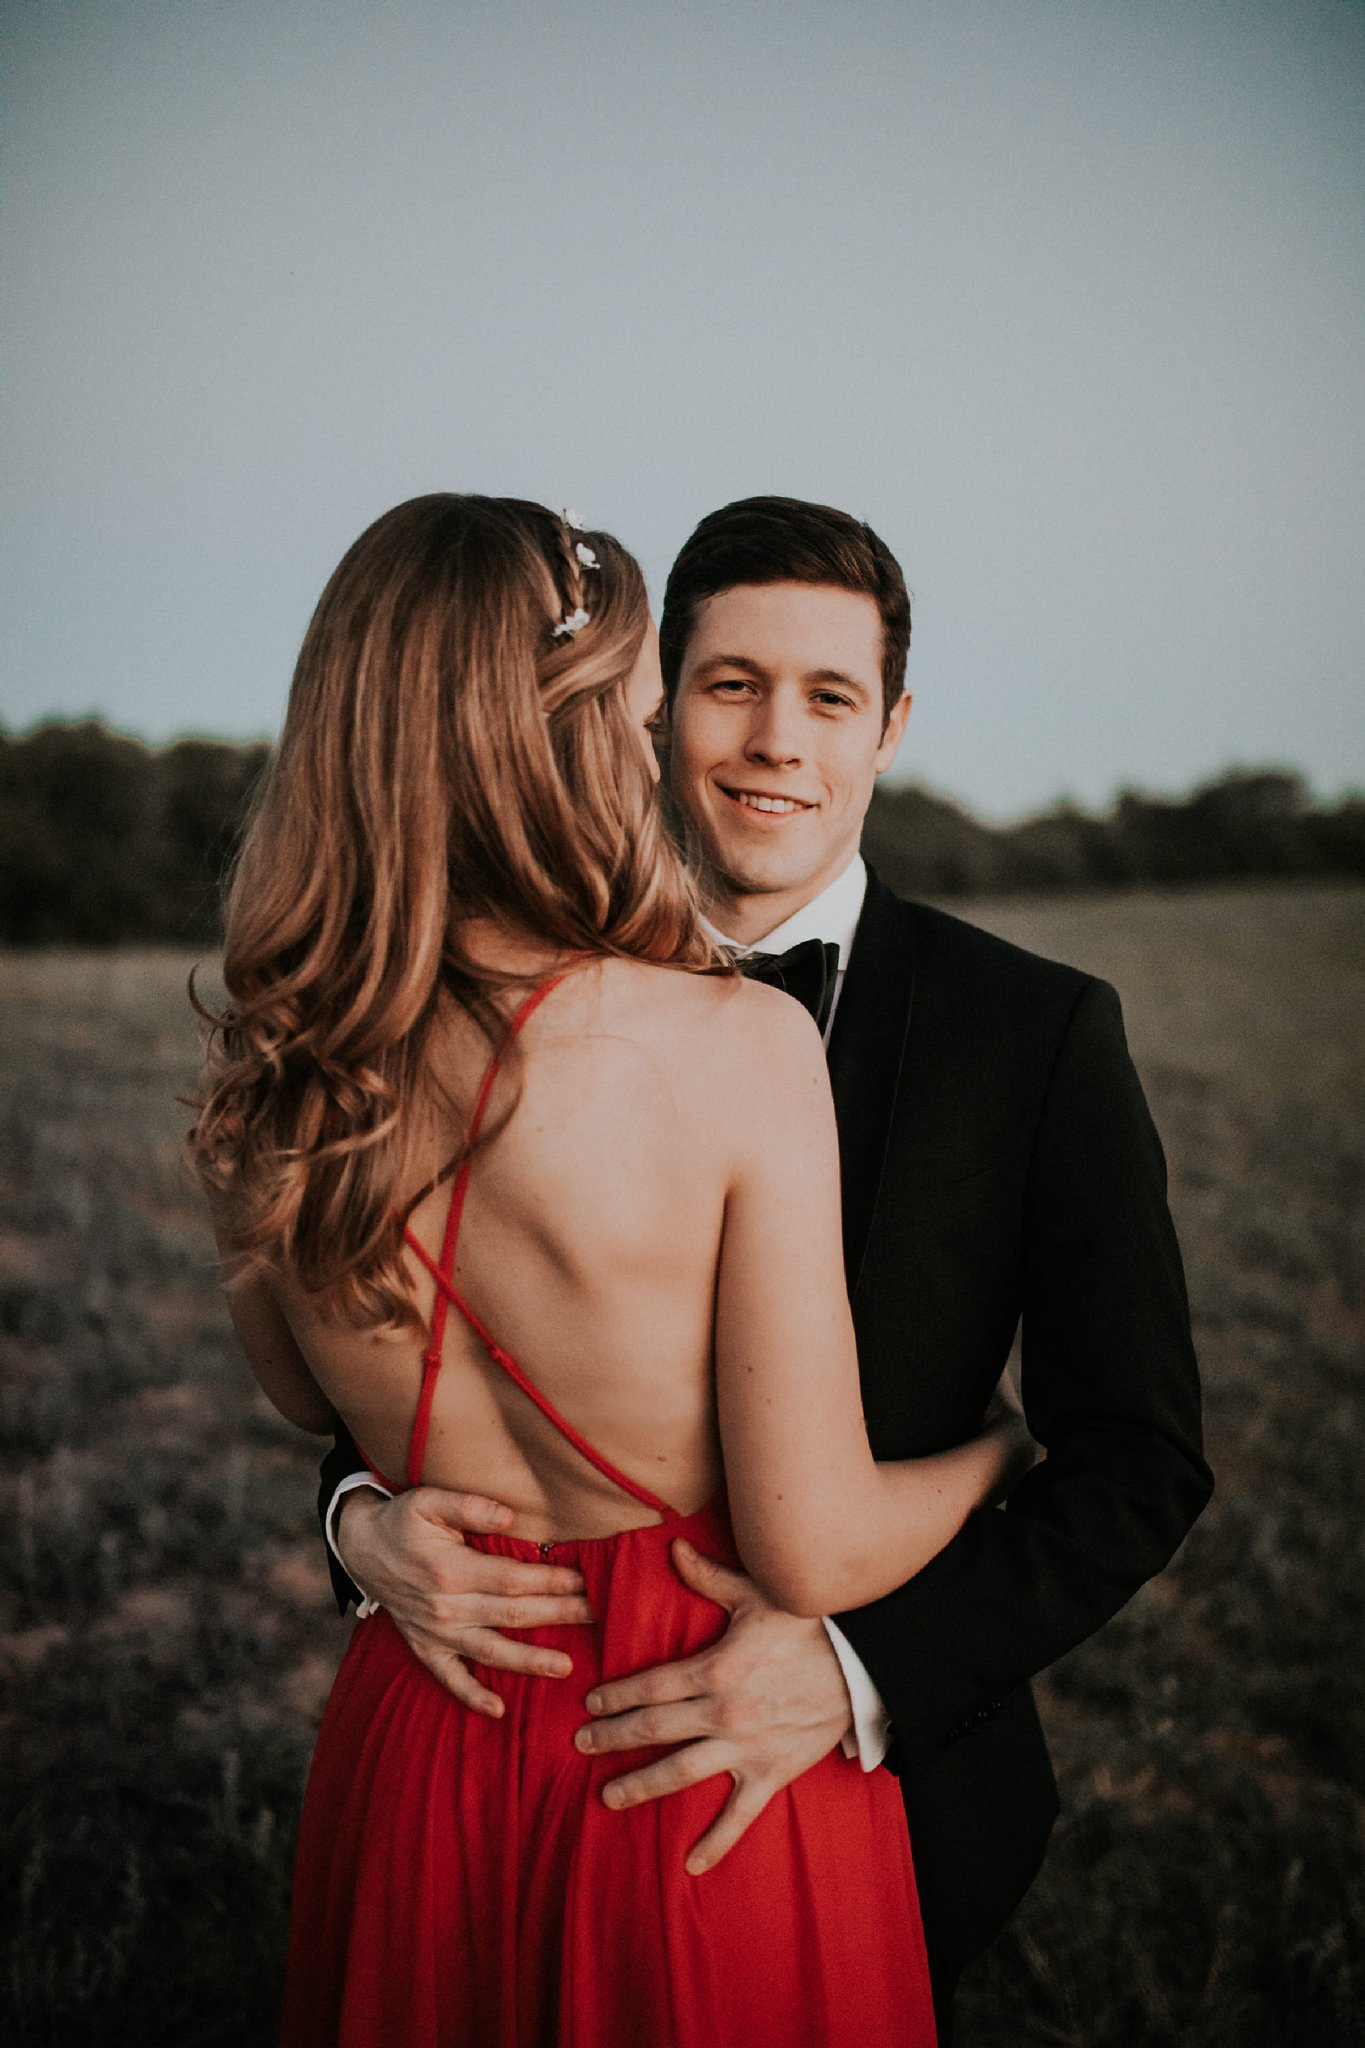 Madeleine Frost - Texas Wedding Photographer - Karen and Tyler -2320.jpg